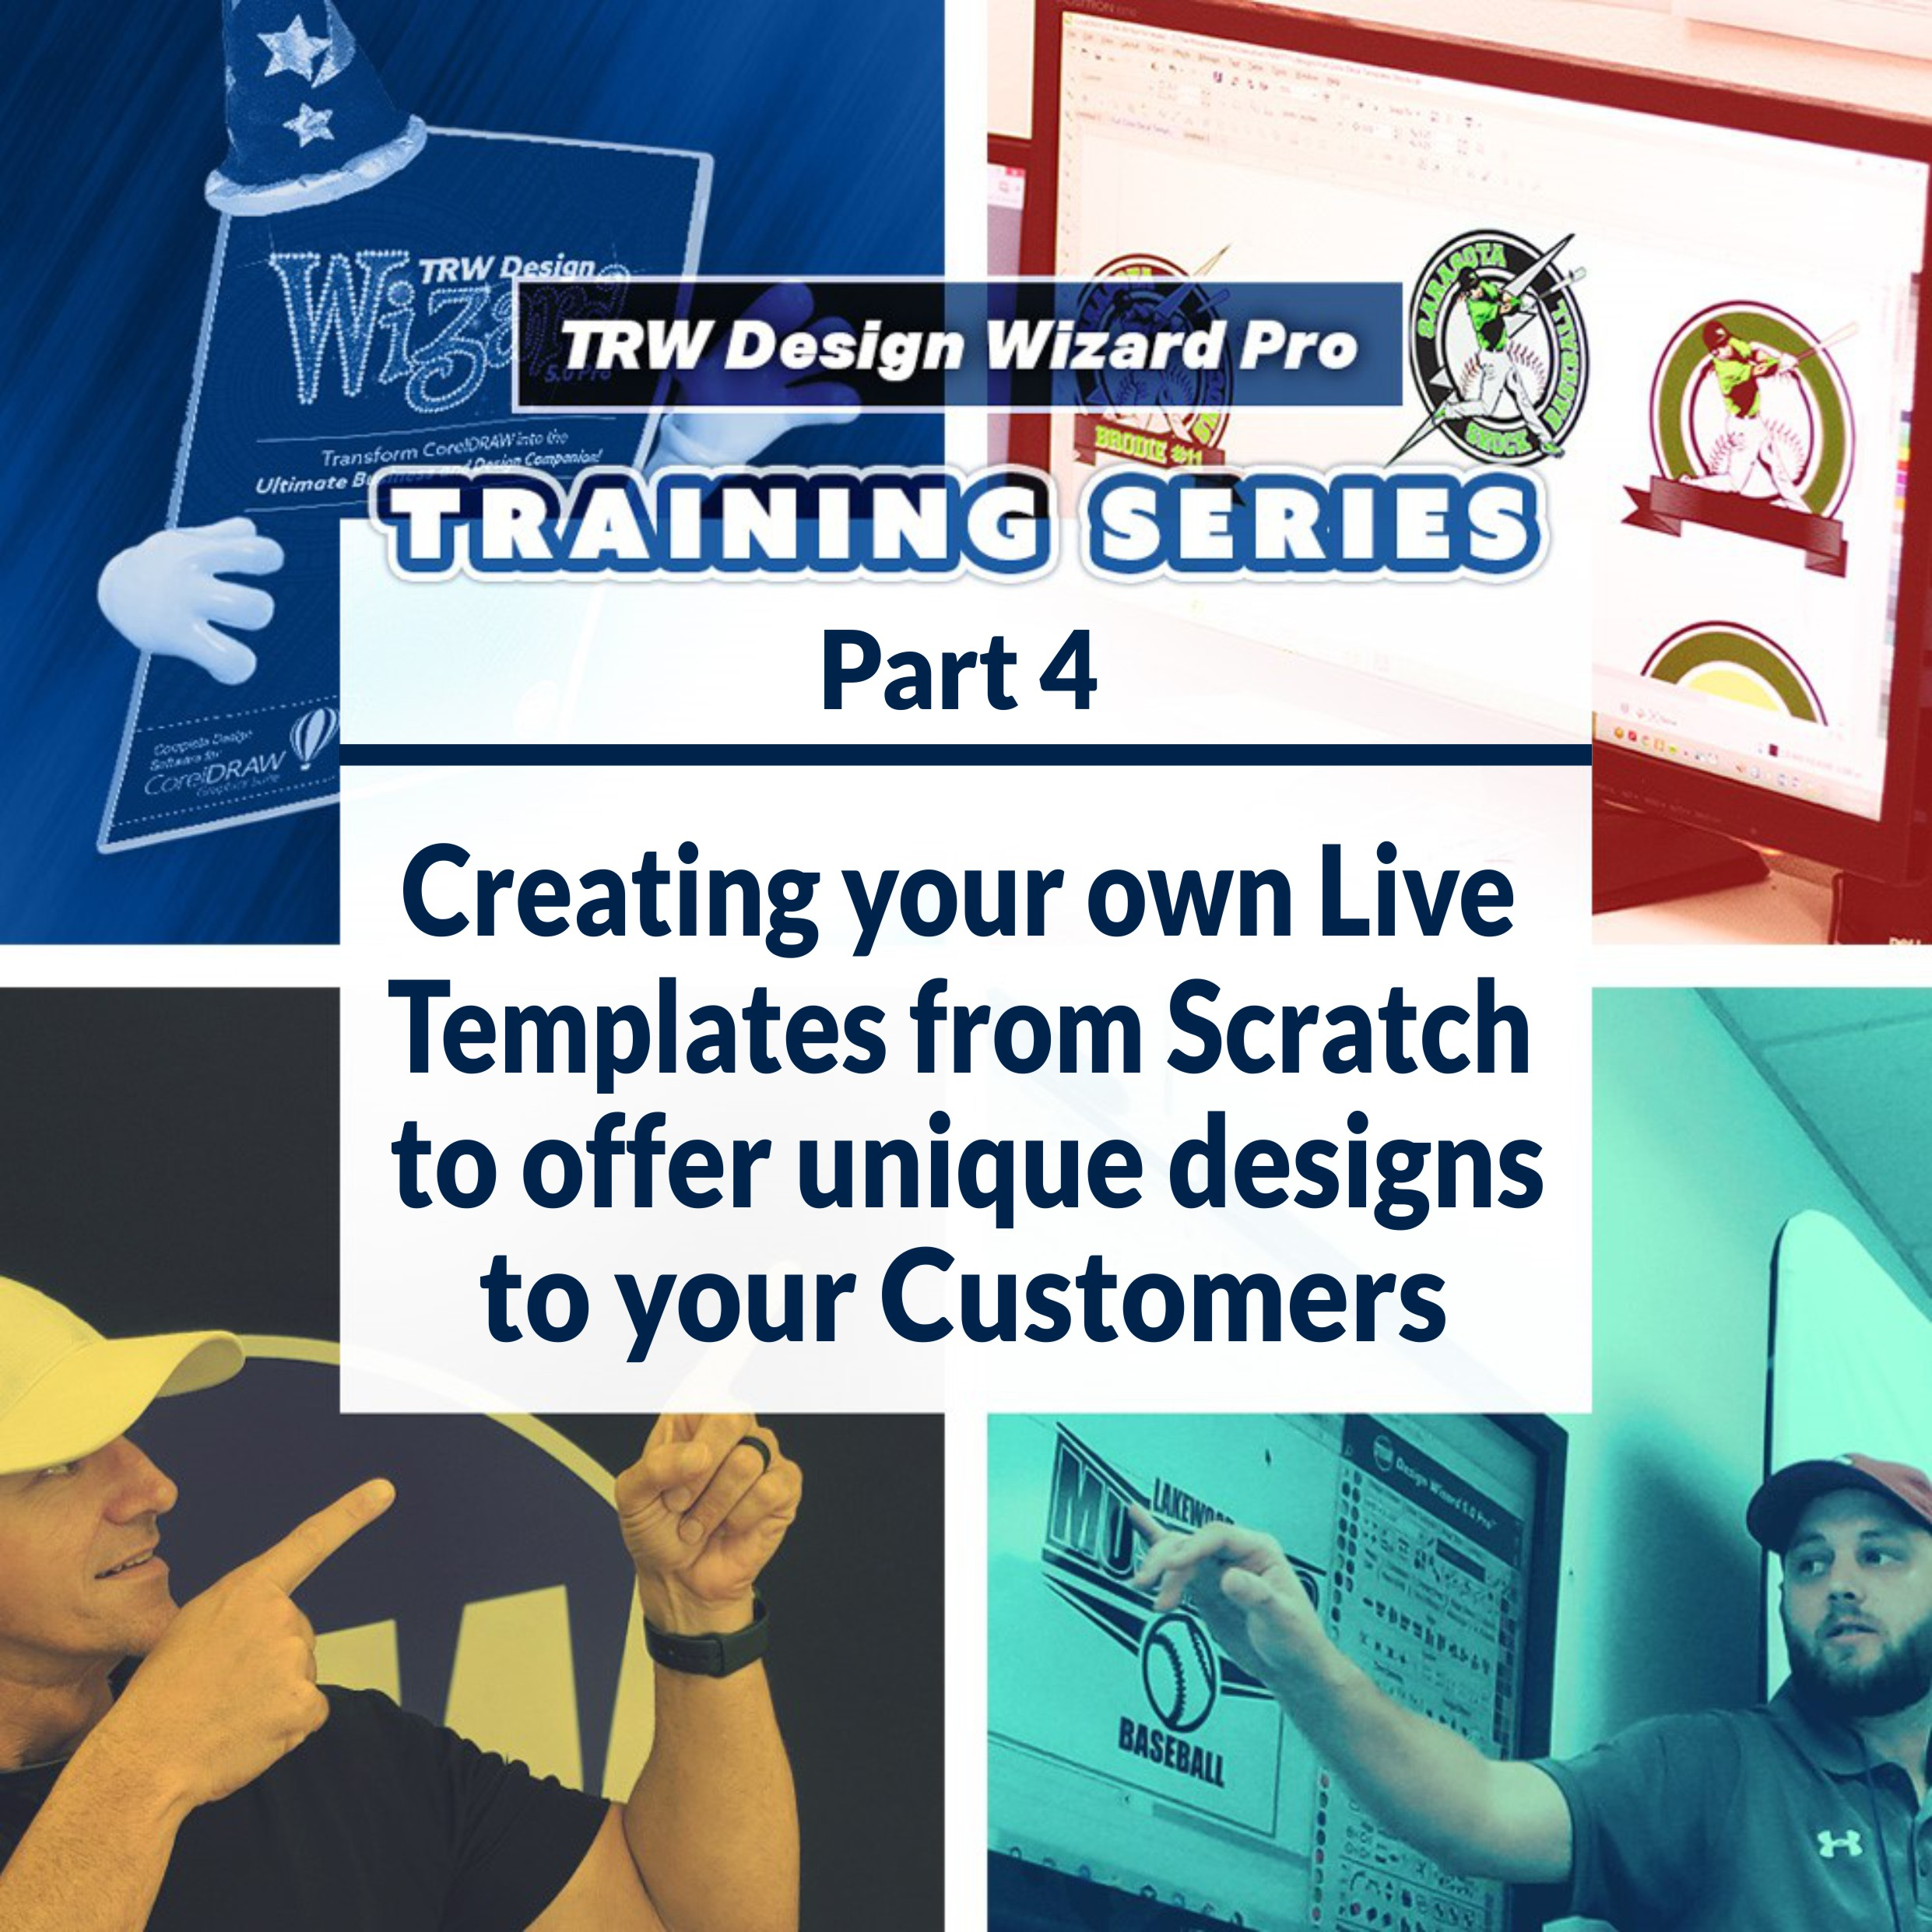 TRW Design Wizard Training Series | Part 4: Creating your own Live Template Designs from Scratch | Thursday March 26 2020 6PM-8PM ET.